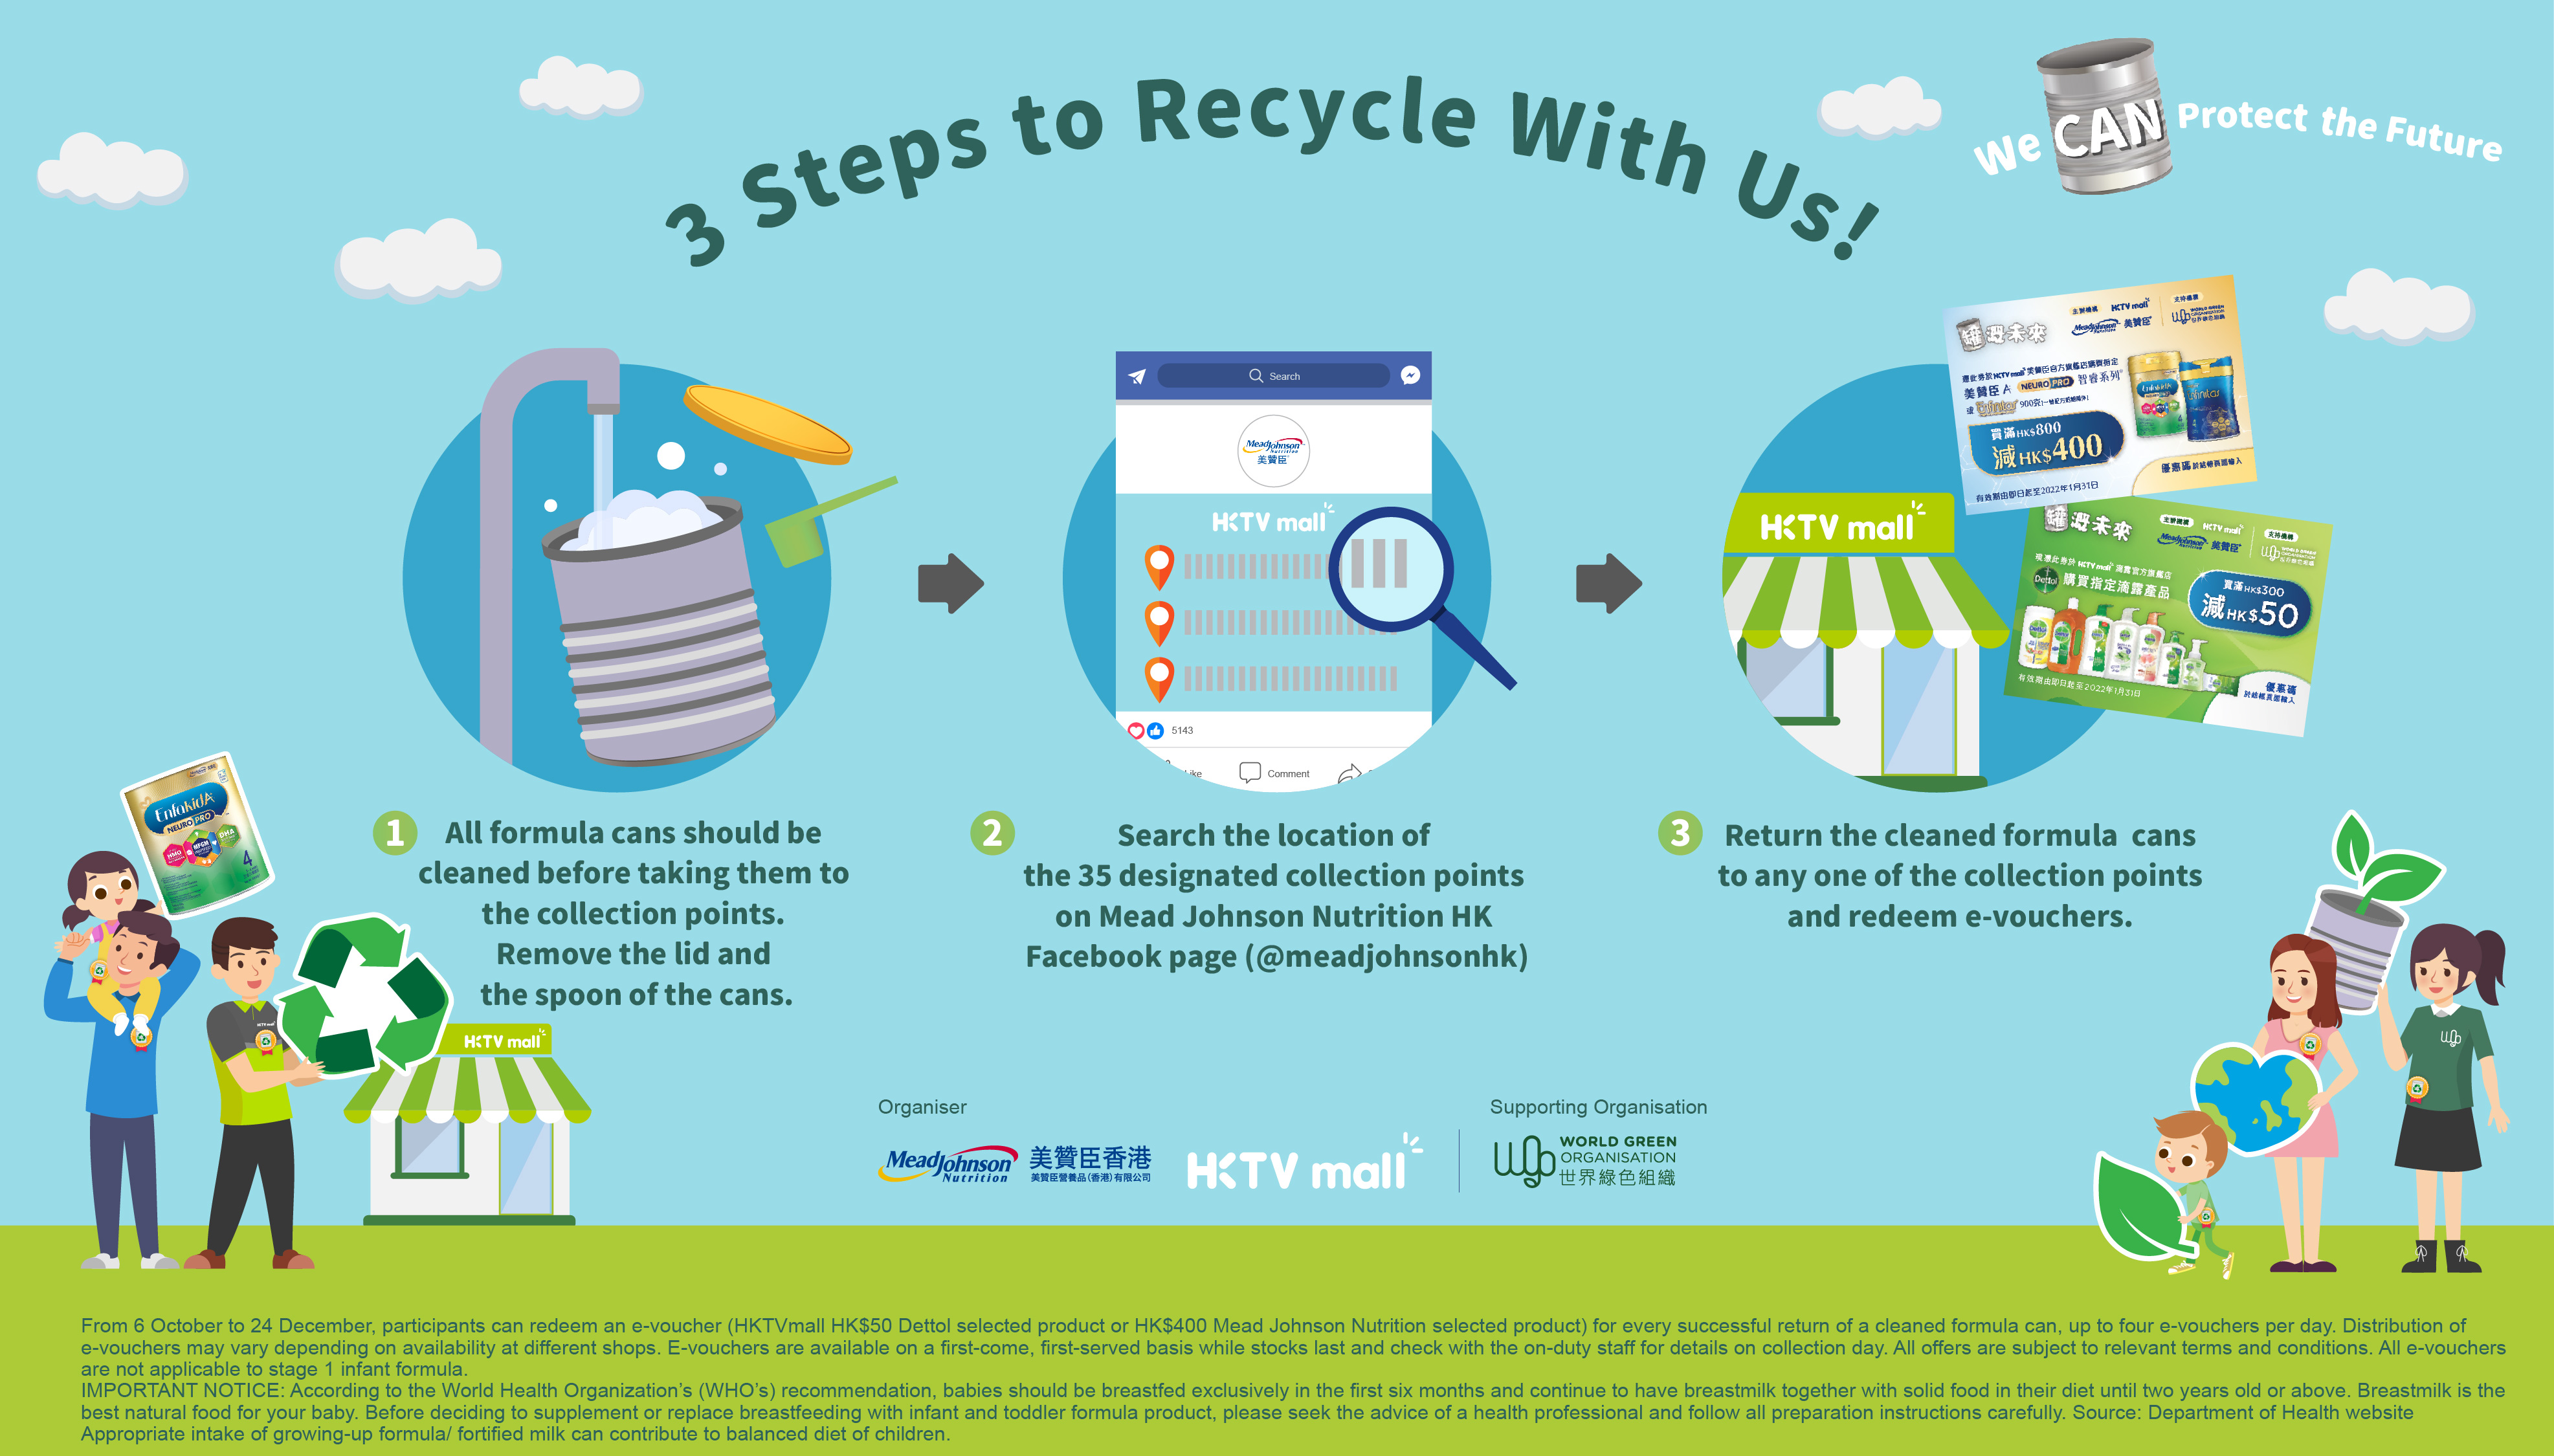 Mead Johnson Nutrition Hong Kong Launches Citywide Can Recycling Incentive Scheme